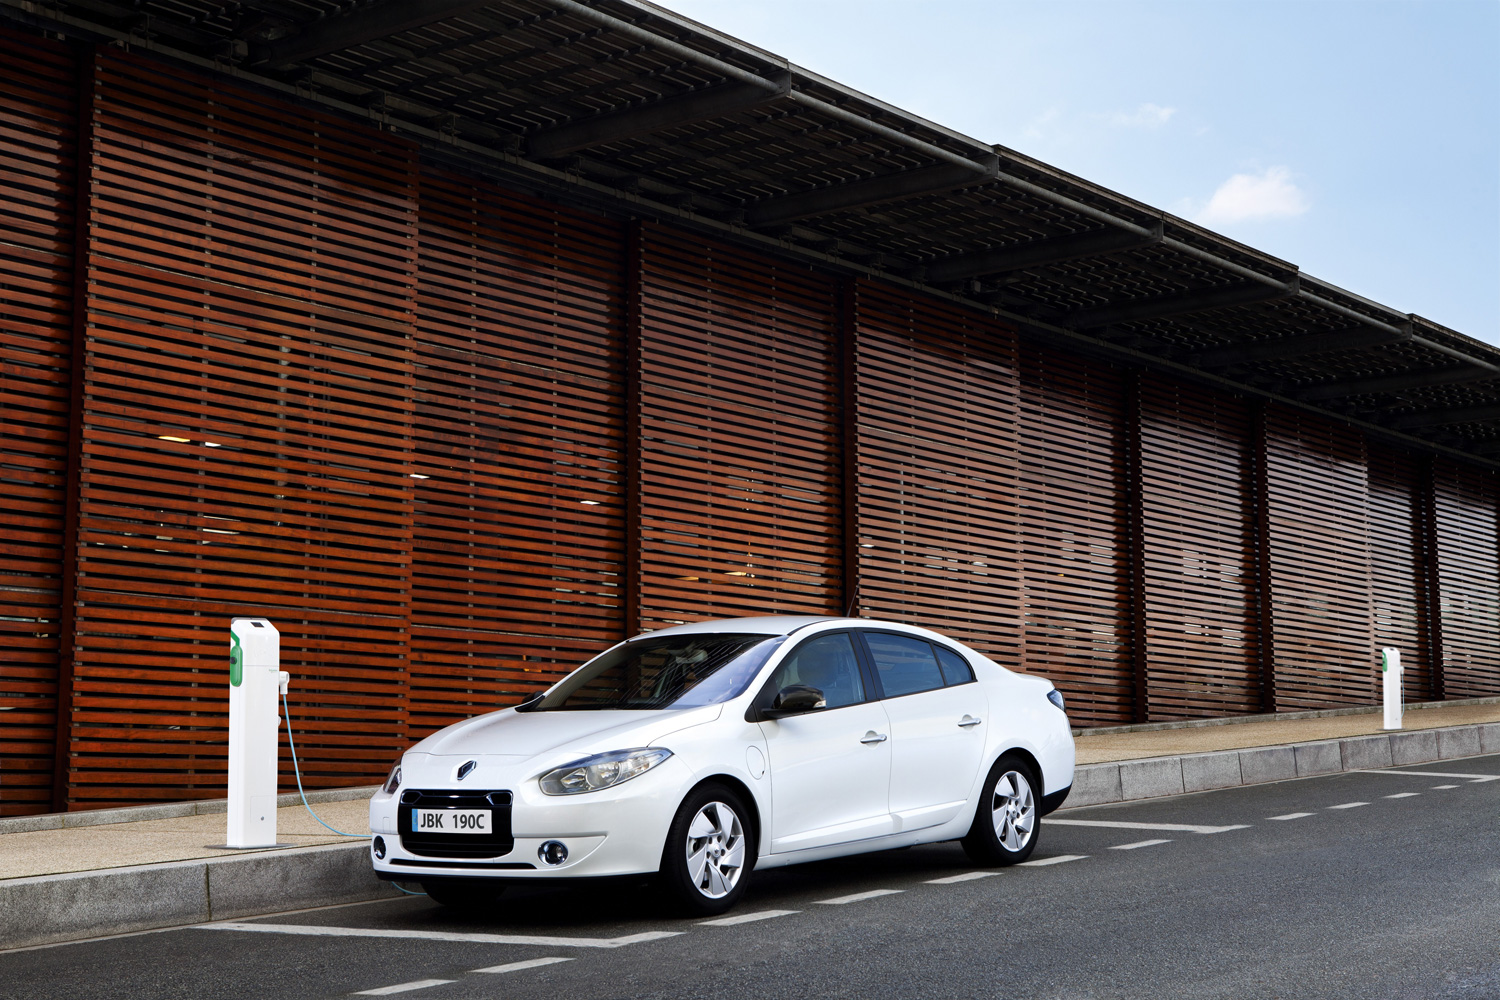 Volvo C30 electric & Renault Fluence Z.E. im ADAC Test [Video]